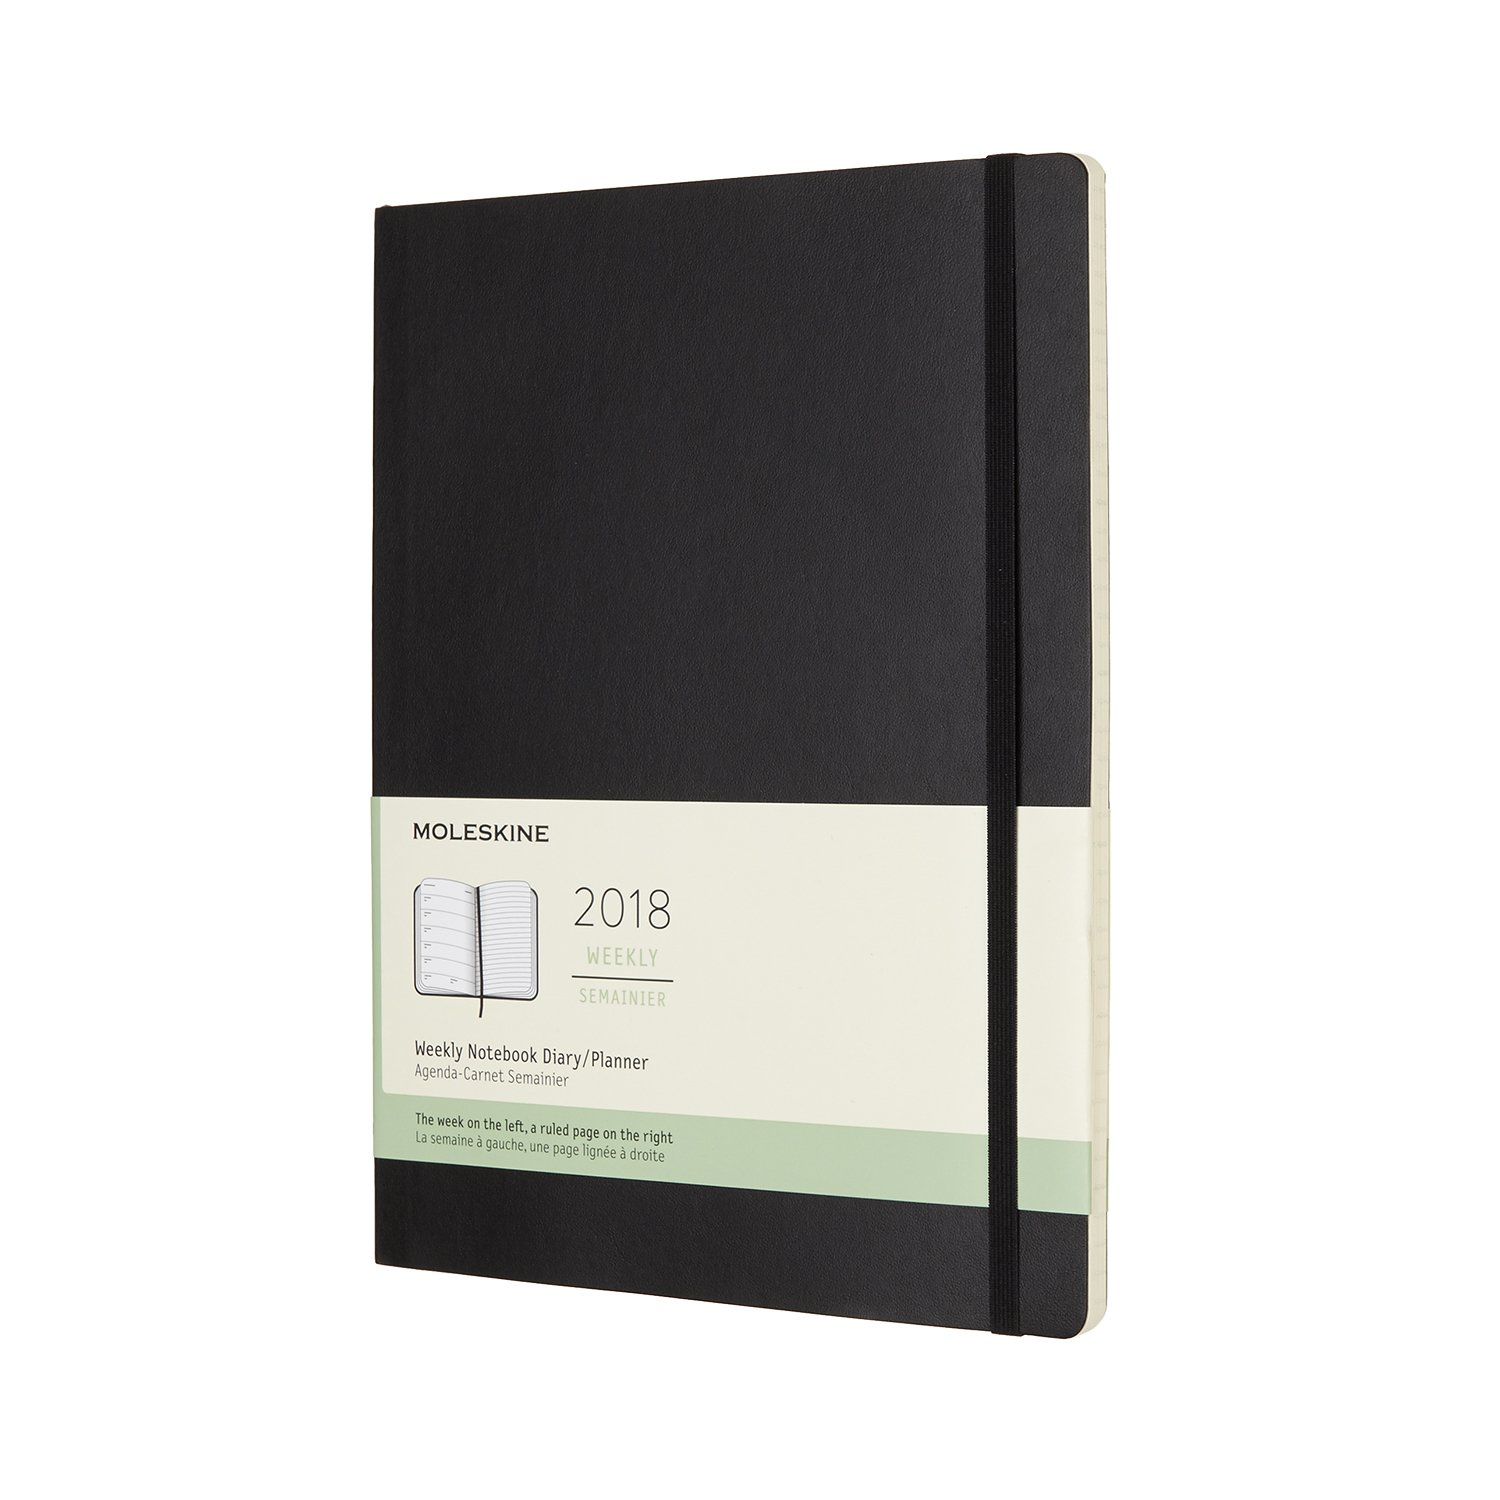 Moleskine 12 Month Weekly Planner, Extra Large, Black, Soft Cover (7.5 x 10) by Moleskine